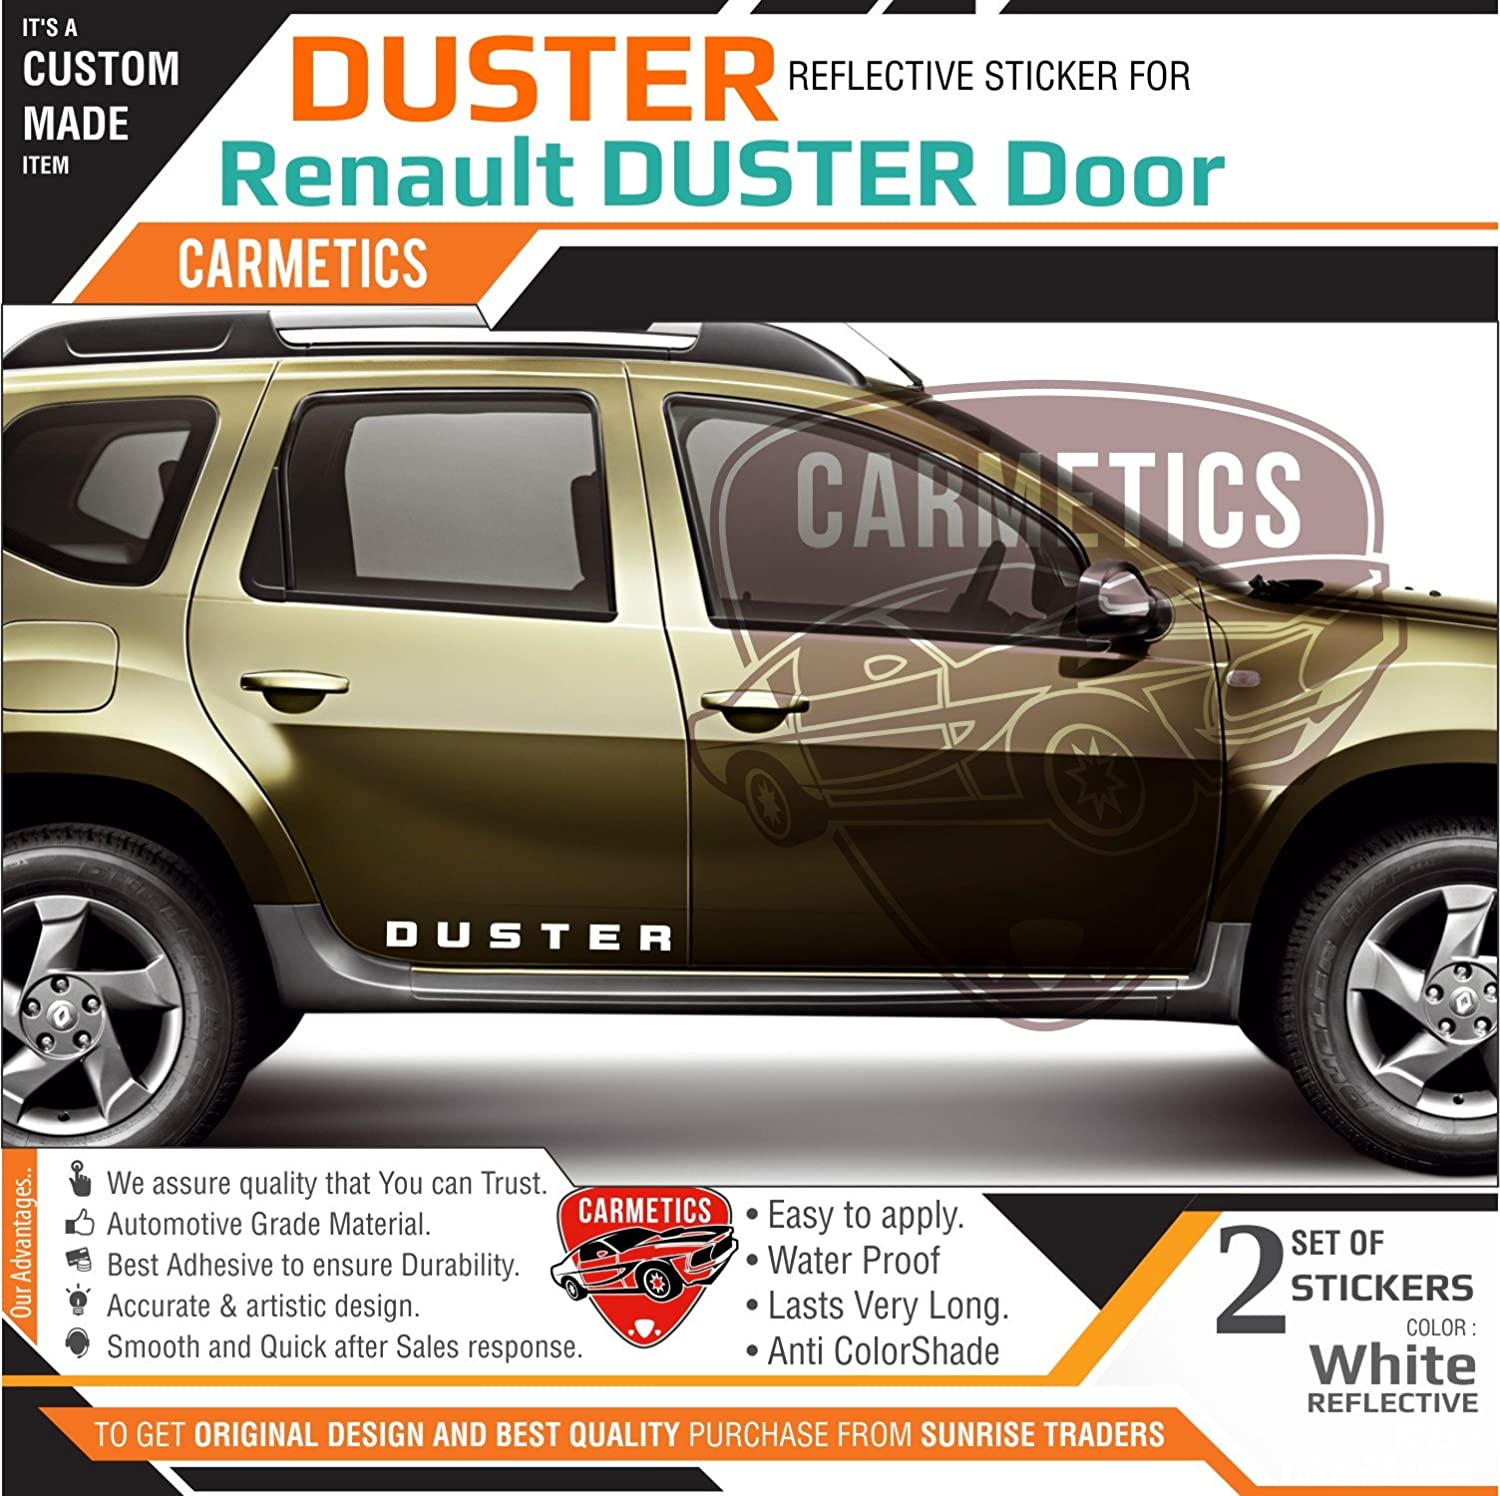 Carmetics duster door side stickers for renault duster white 2pcs gang of dusters amazon in car motorbike